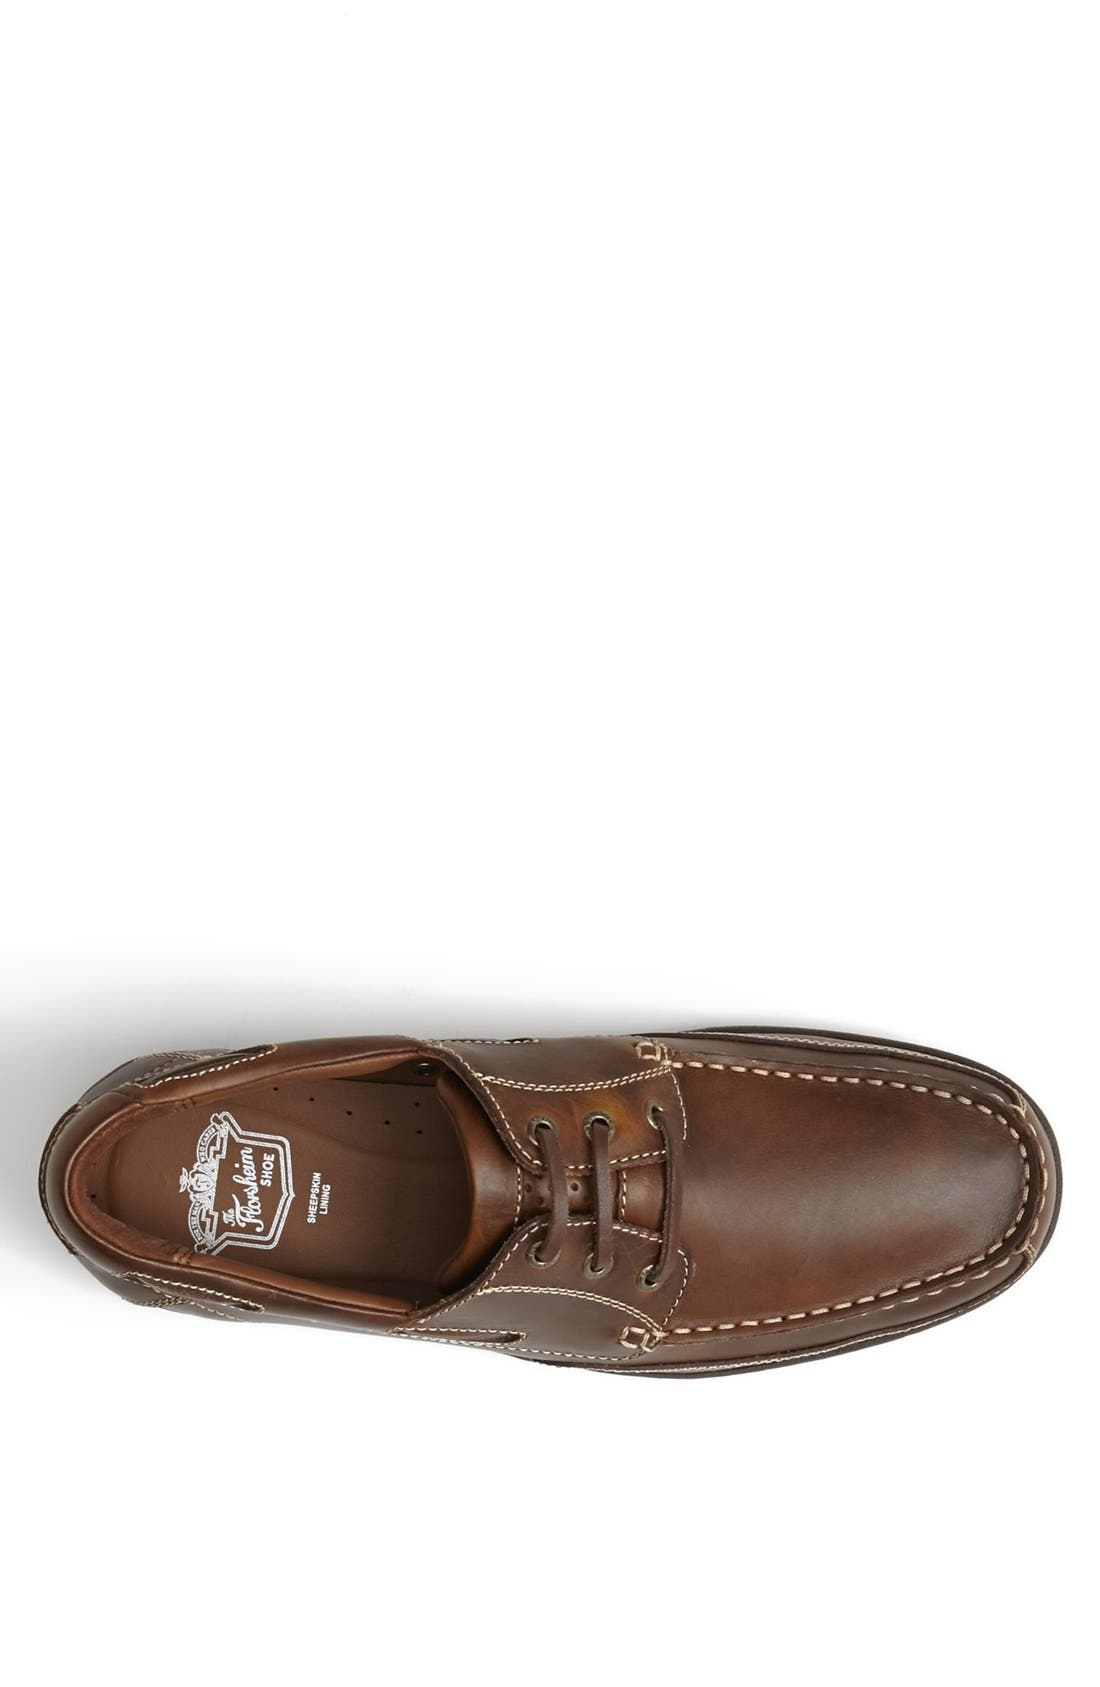 Alternate Image 3  - Florsheim 'Lakeside LX' Boat Shoe